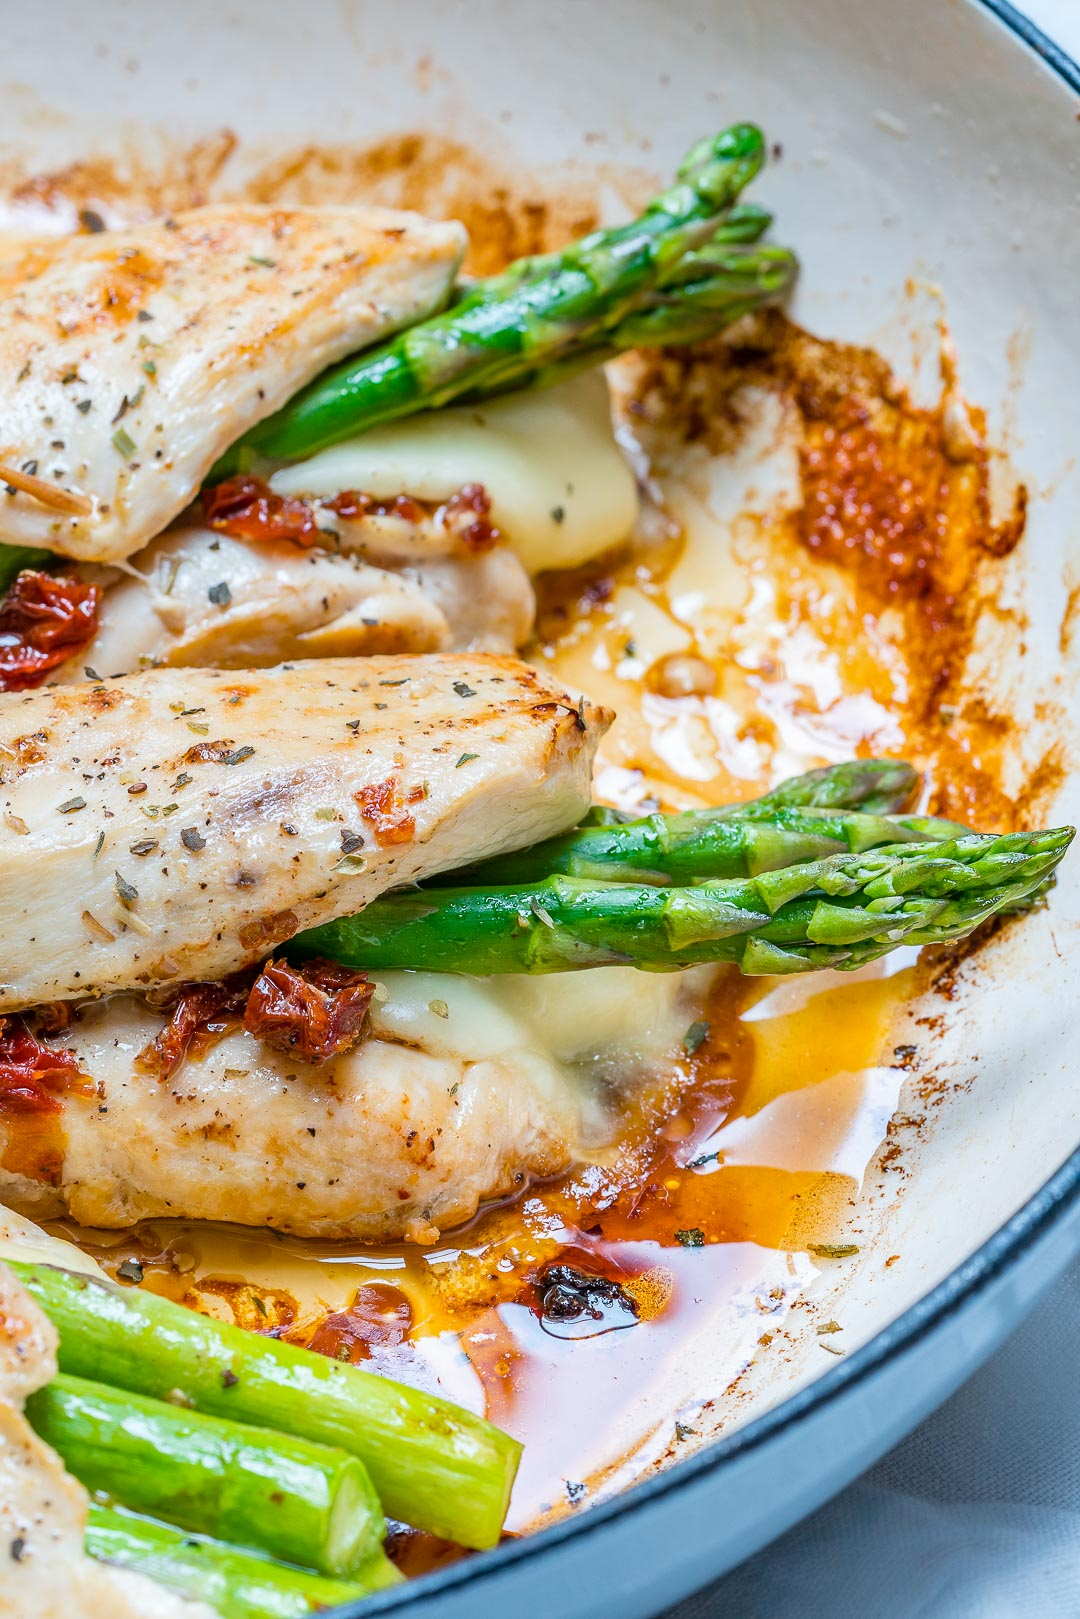 ãWarm asparagus spears with mozzarella and sun-blush tomatoesãã®ç»åæ¤ç´¢çµæ